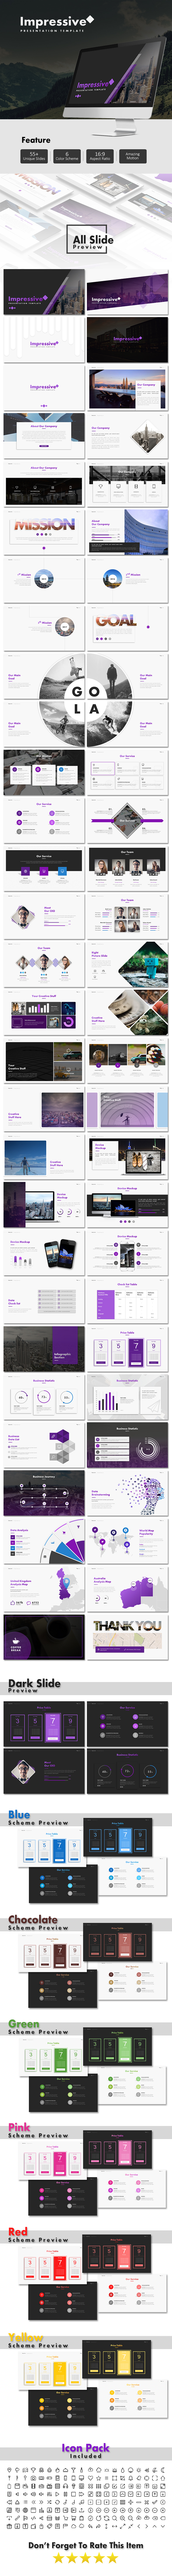 Impressive Powerpoint Template - Business PowerPoint Templates